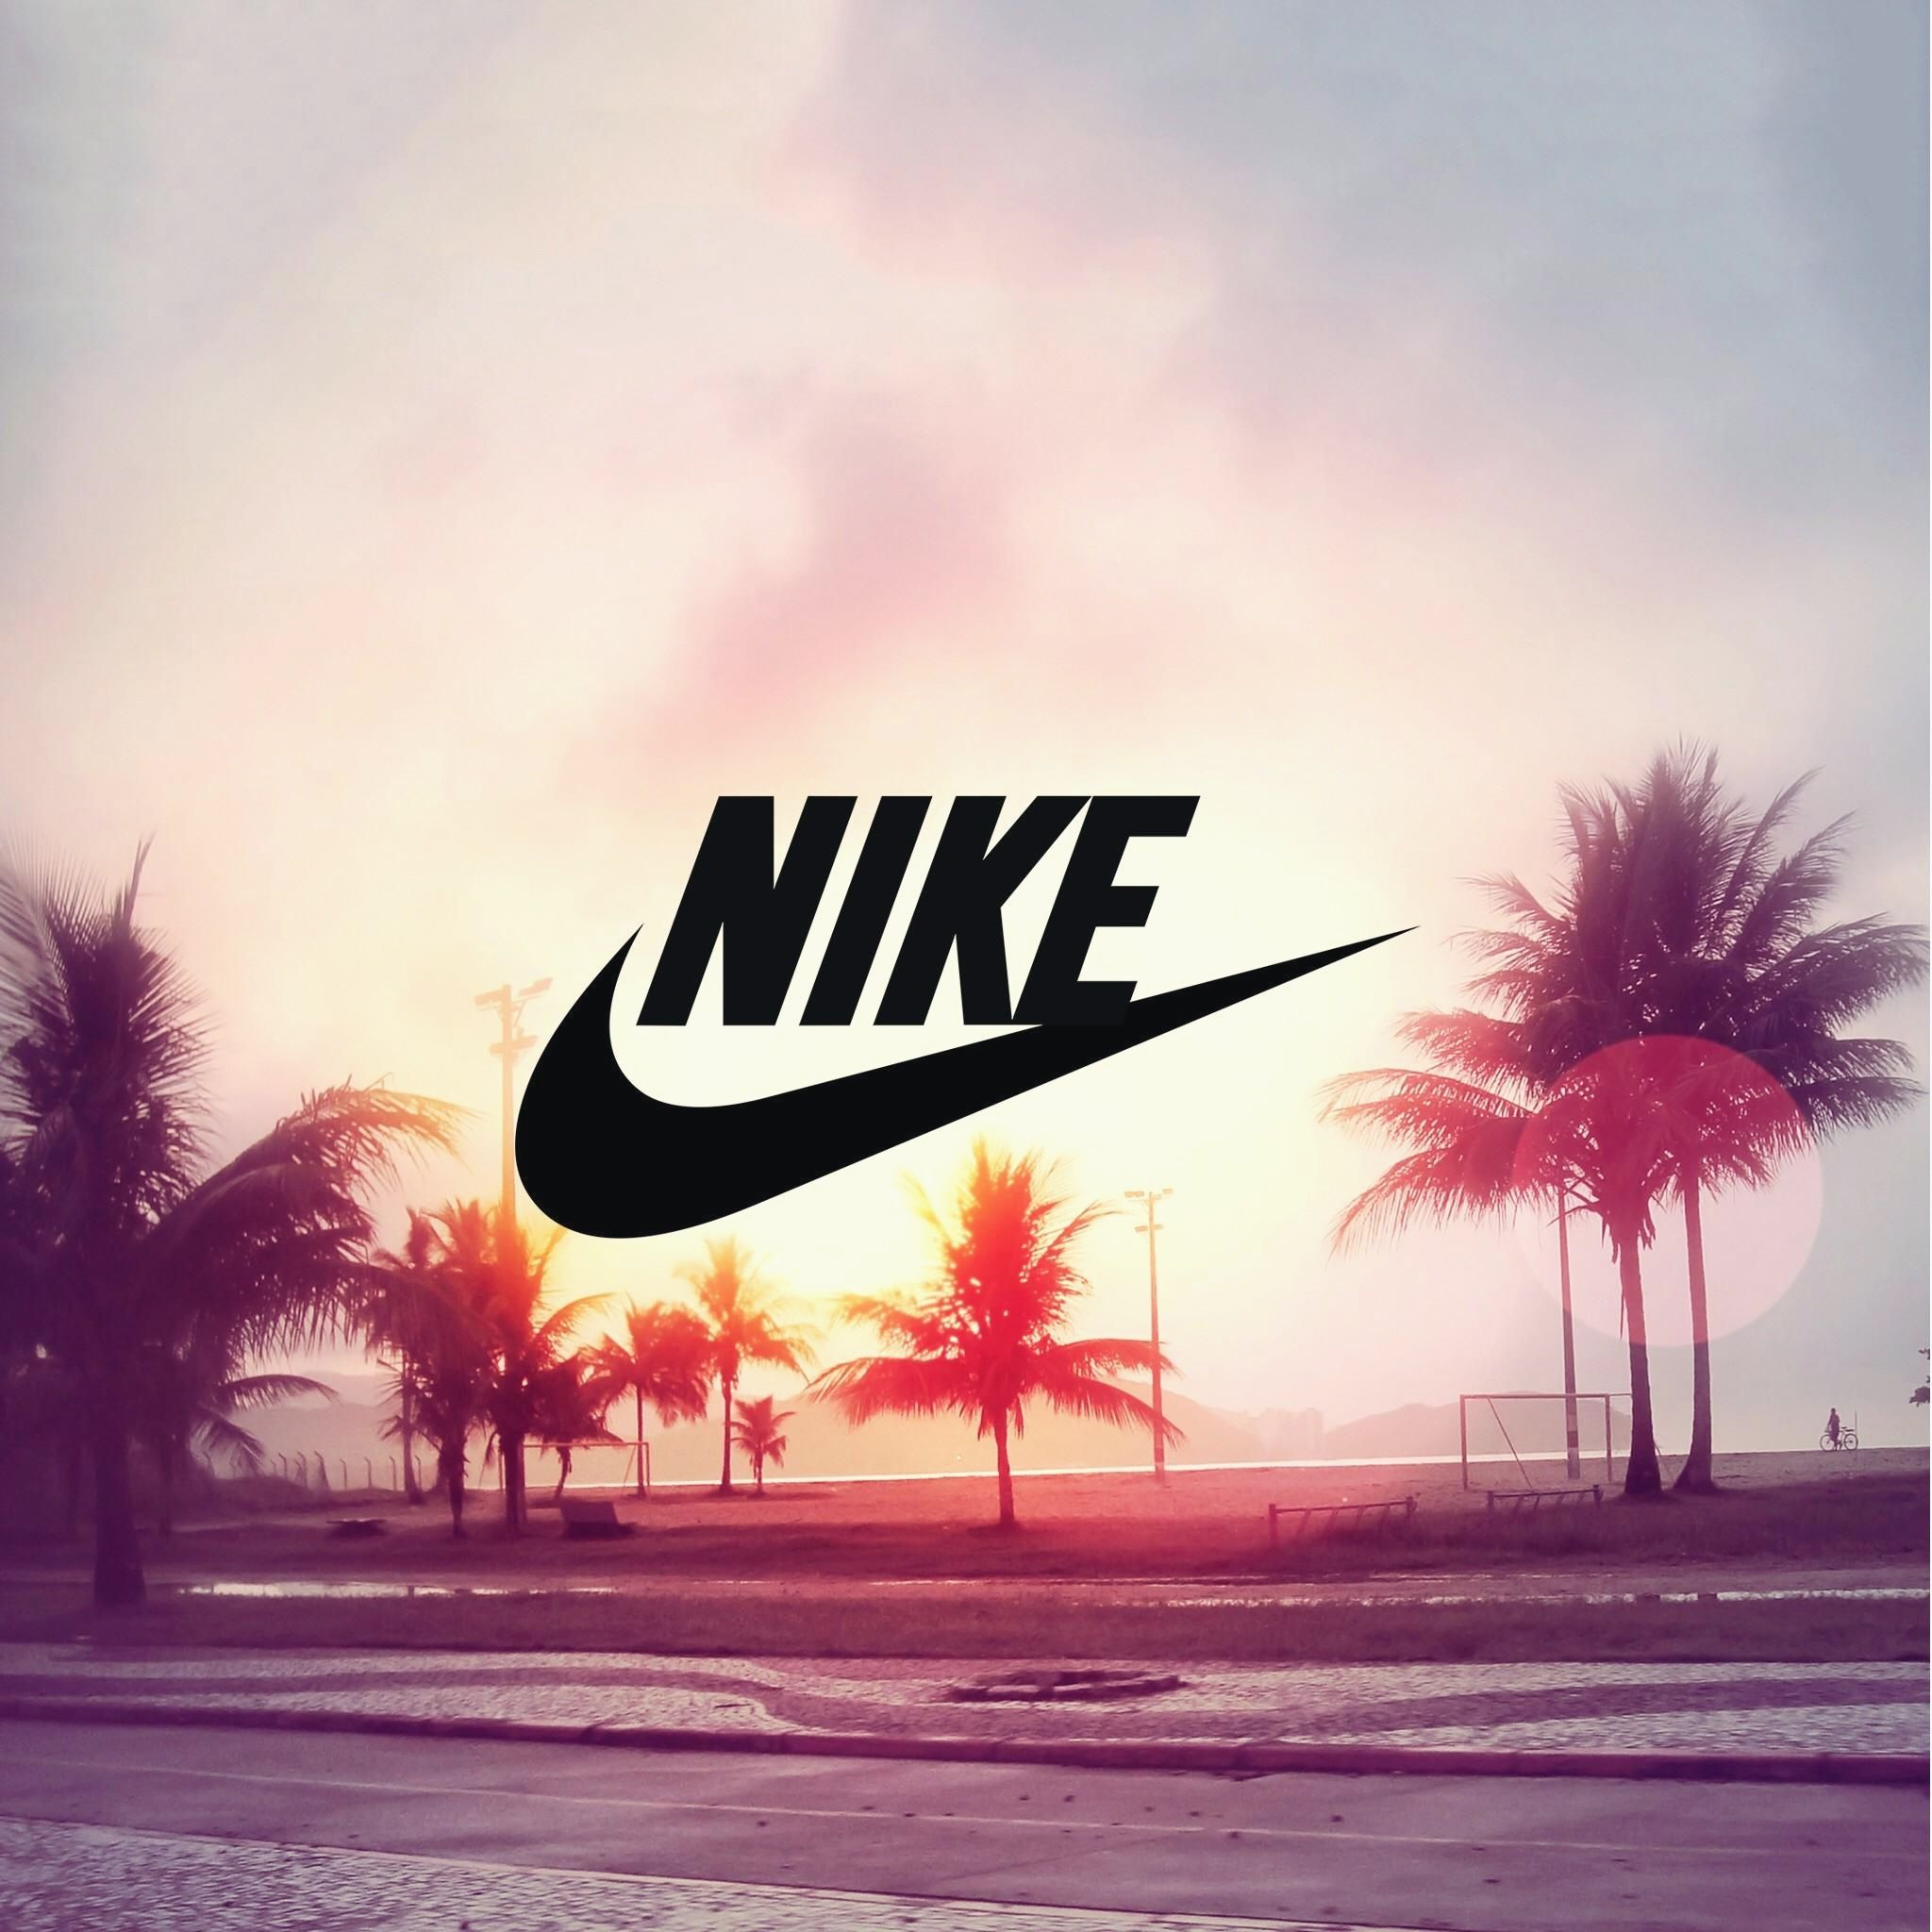 New Wallpaper Of Nike Nike Wallpaper Nike Wallpaper Iphone Cool Nike Wallpapers